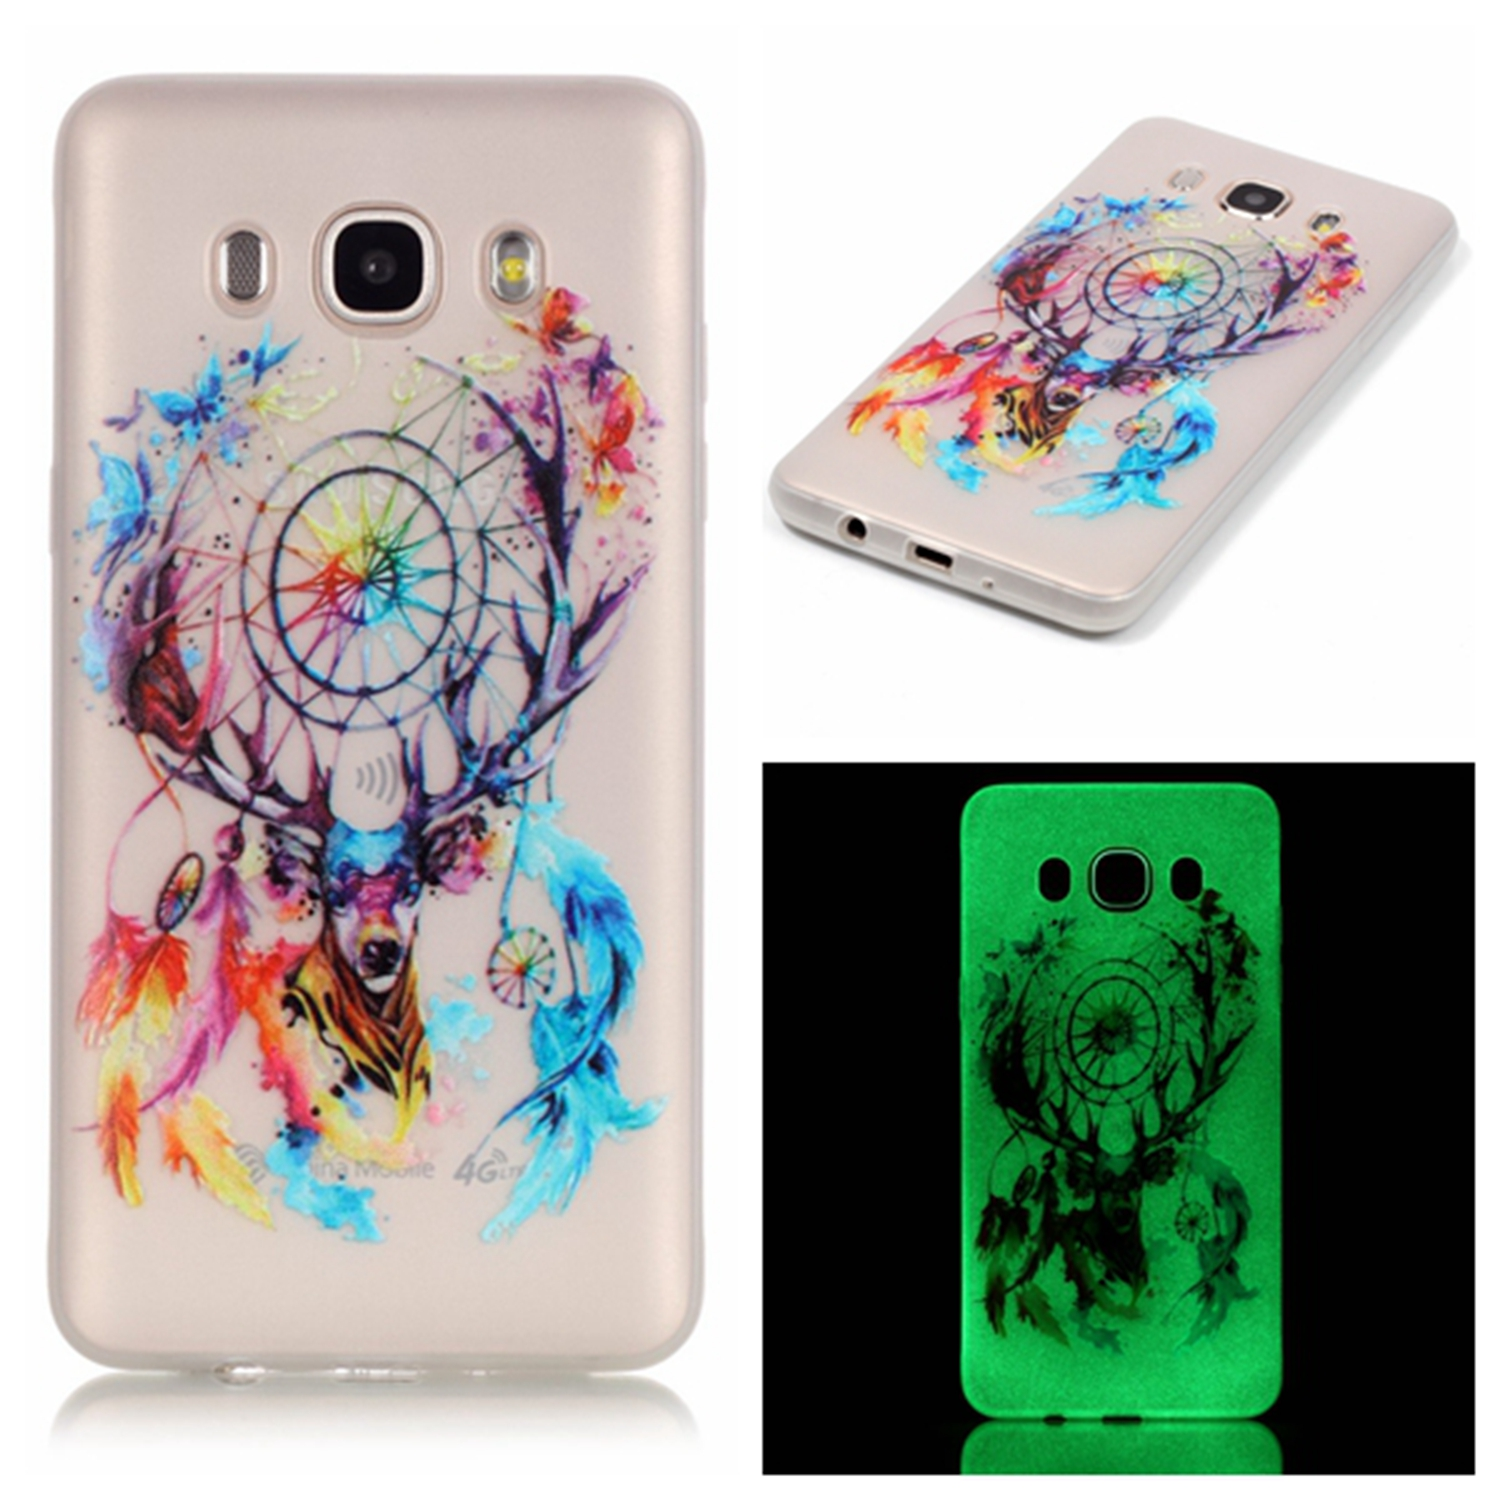 coque j5 2016 for samsung galaxy j5 2016 case samsung j5 duos 2016 cover galaxy j5 2016 sm j510f